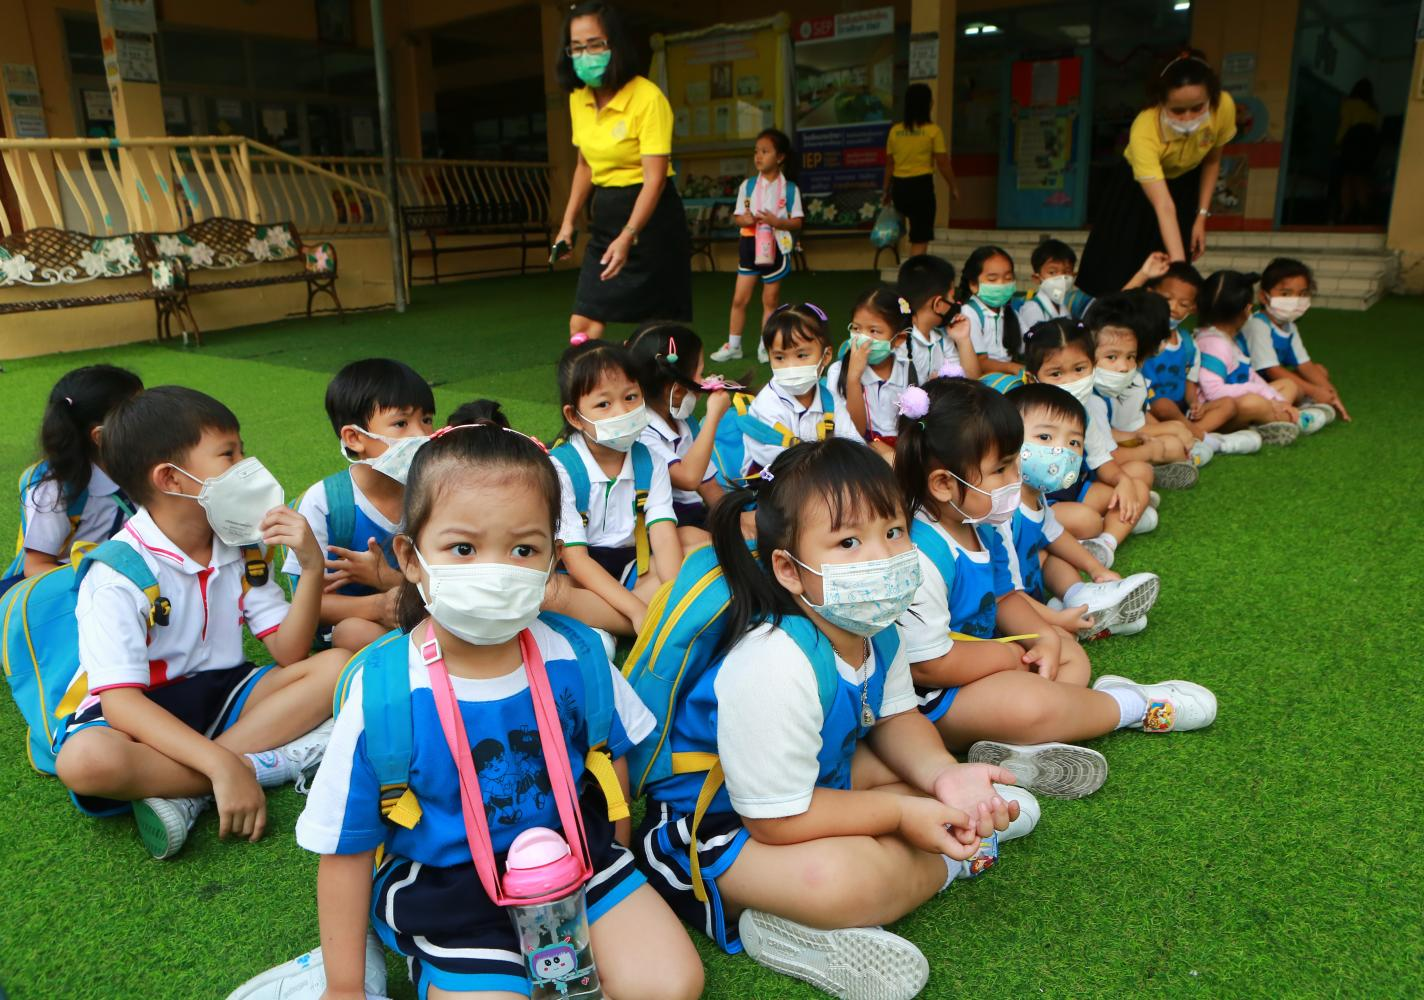 Students in Samut Prakan's Muang district wear face masks as they arrive at Songwitthaya School, where teachers briefed them on how to protect themselves from hazardous PM2.5 dust particles. (Photo by Somchai Poomlard)